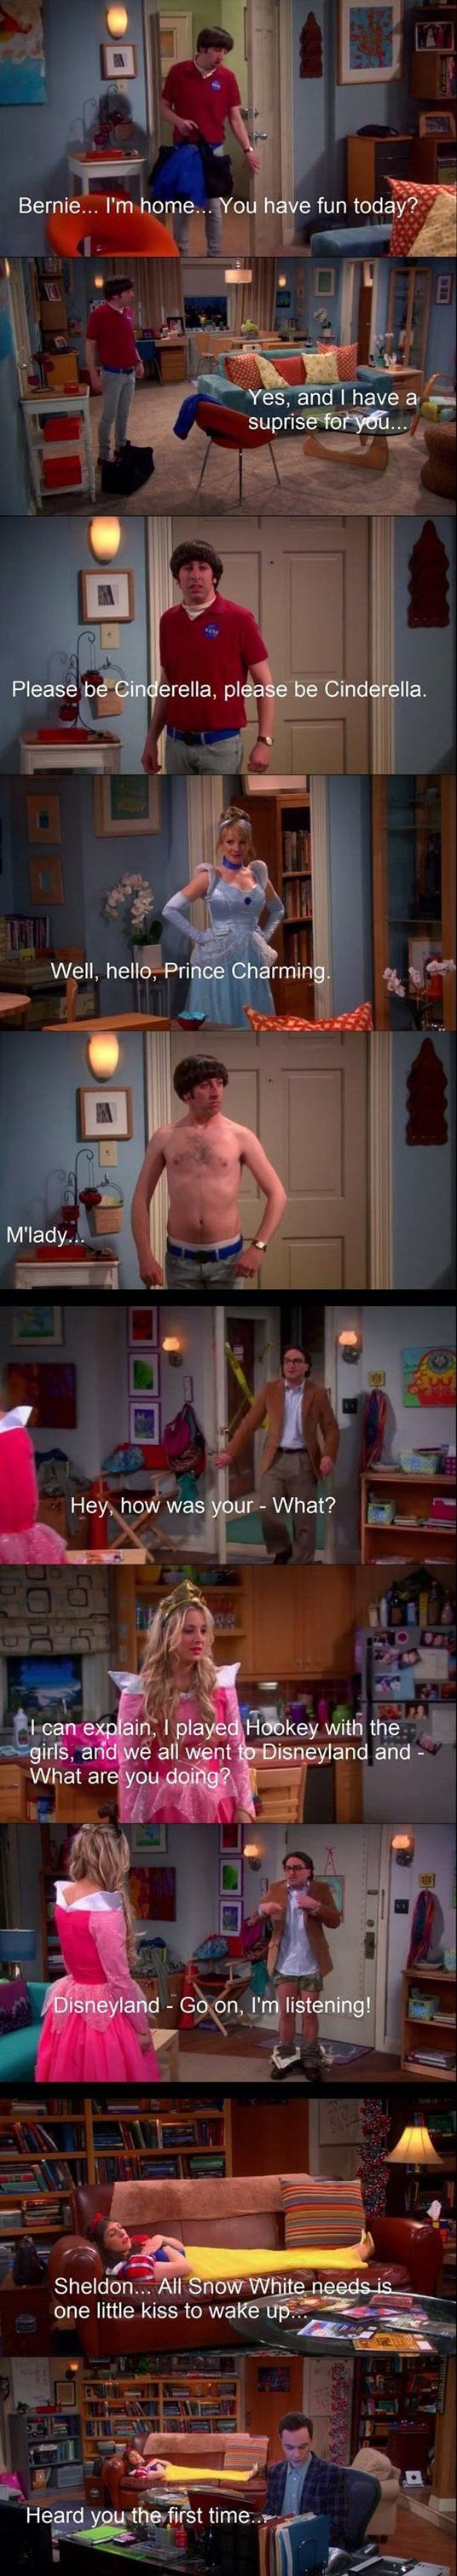 Funny - When The Big Bang Theory meets Disney. One of my favorite episodes.